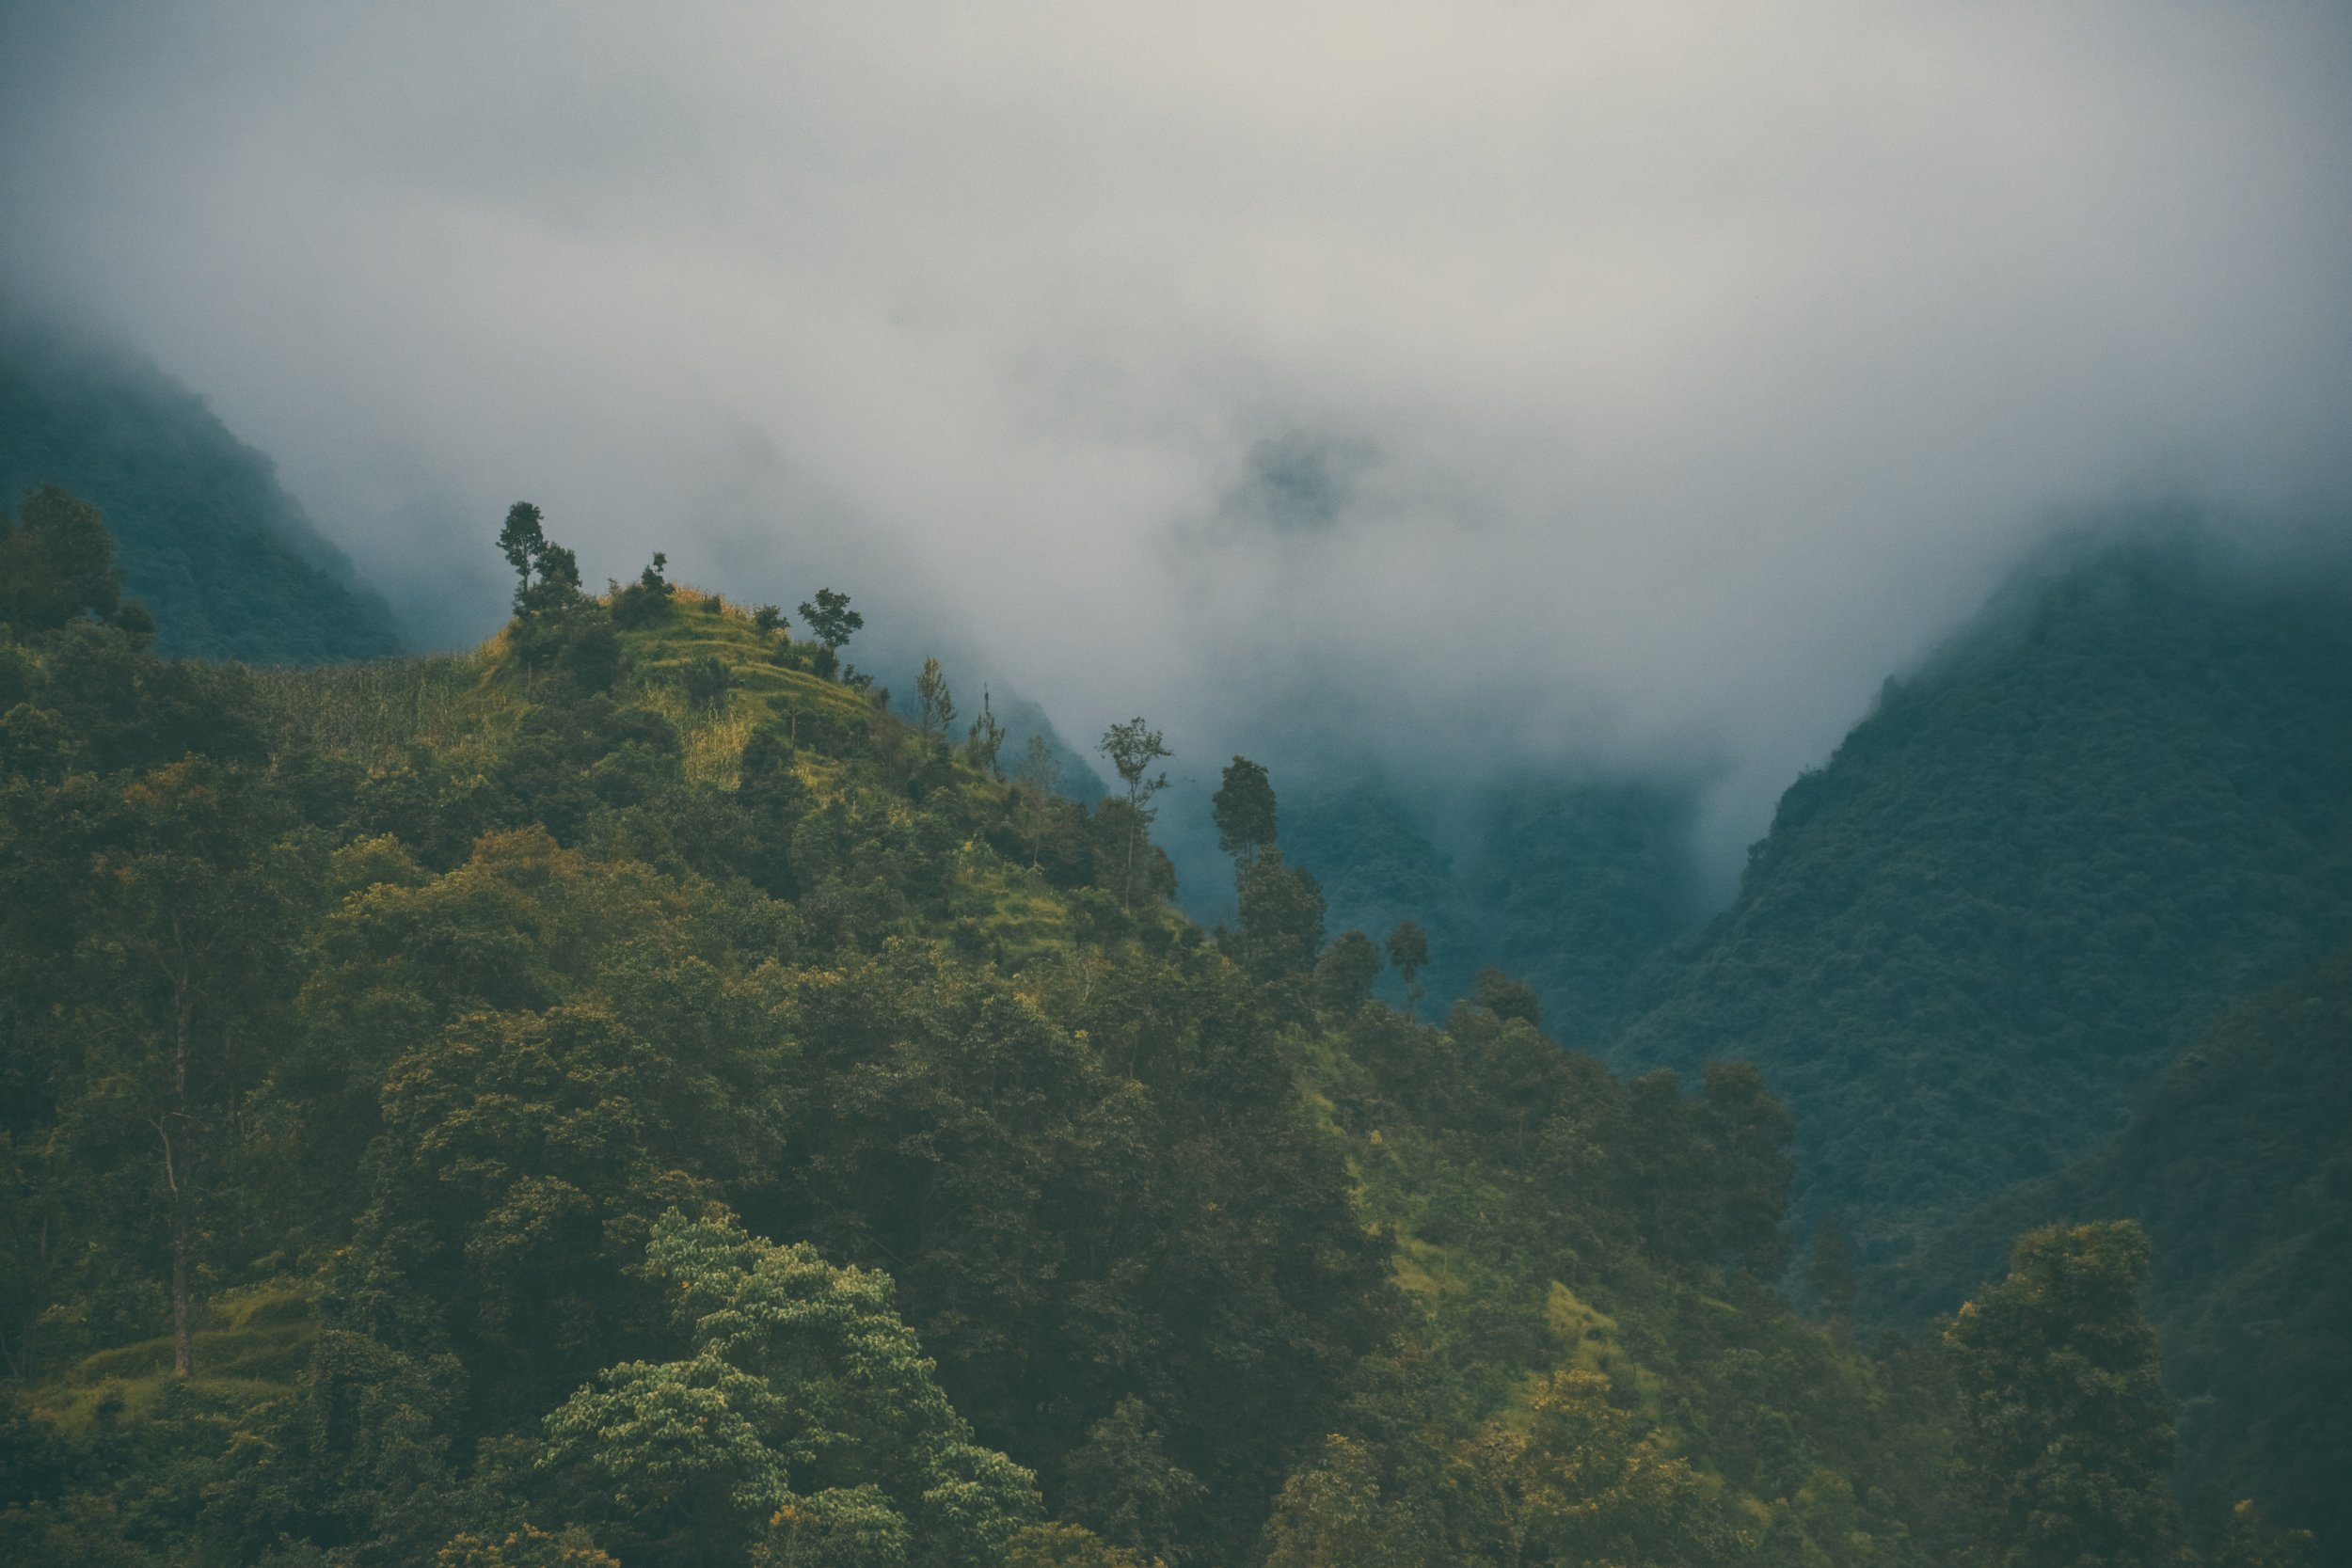 The mist and rain during monsoon can make it uncomfortable to trek, and hide any mountains views you might be looking for!